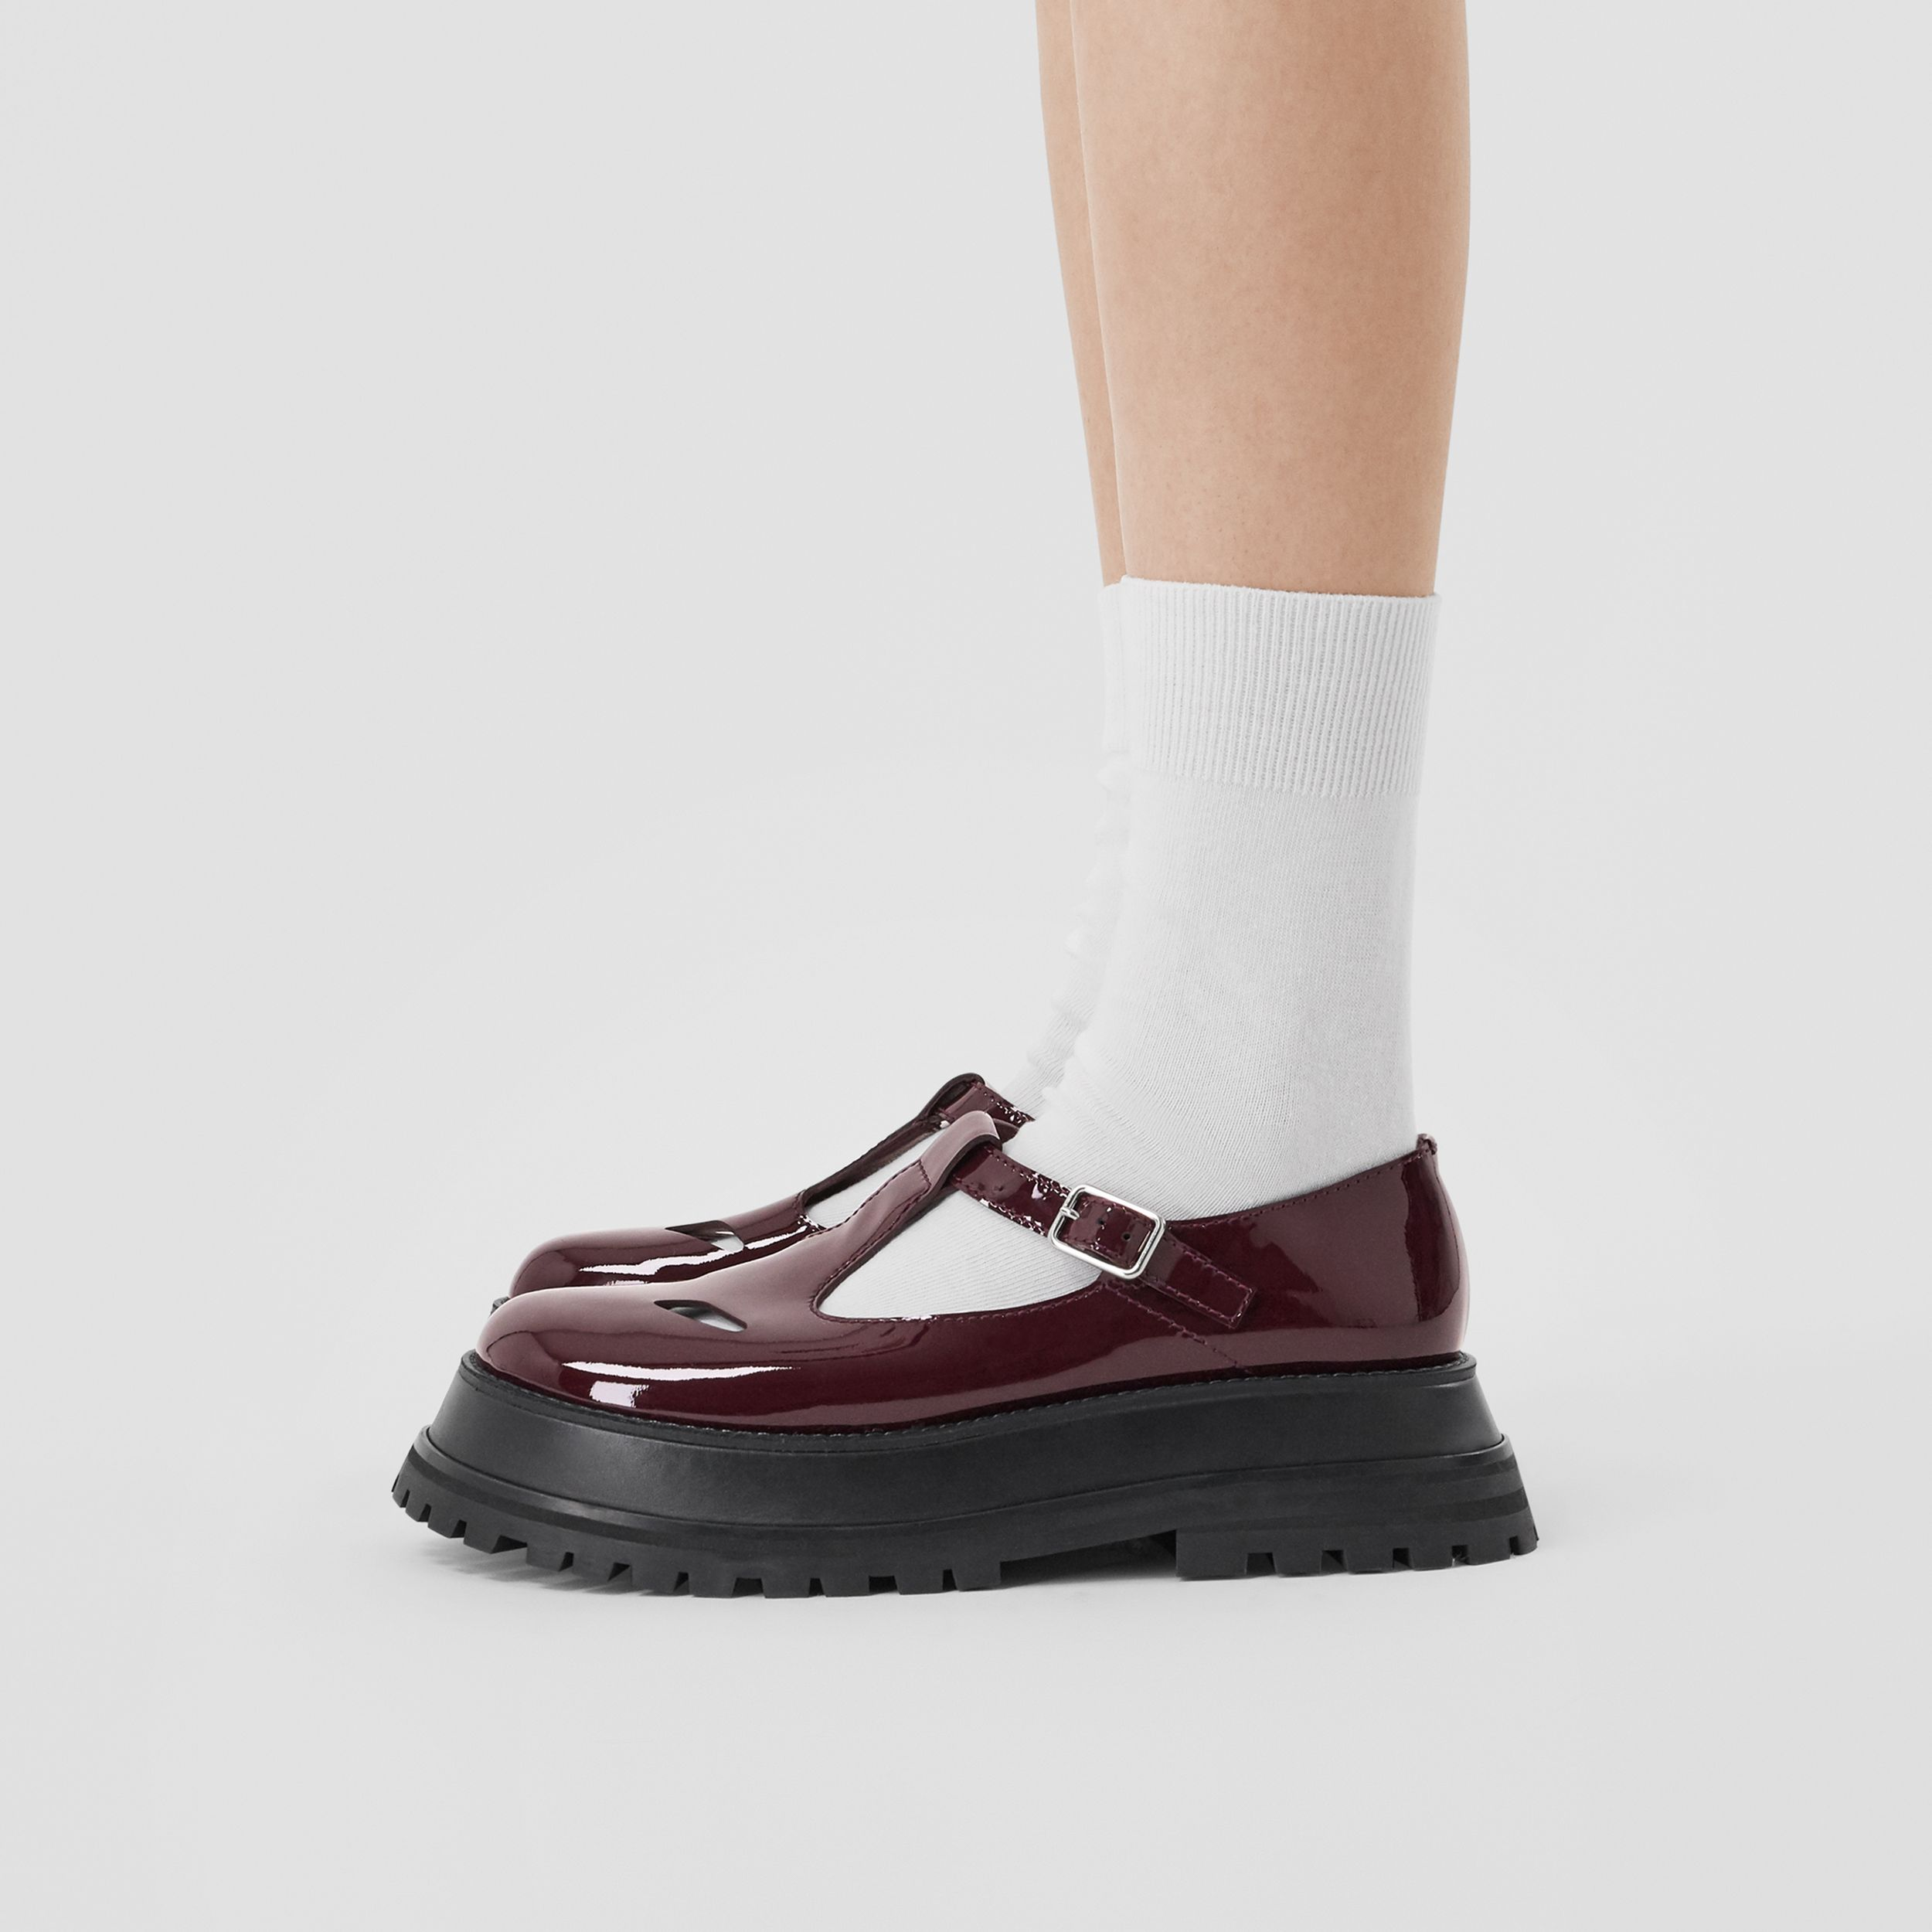 Patent Leather T-bar Shoes in Oxblood - Women | Burberry - 3